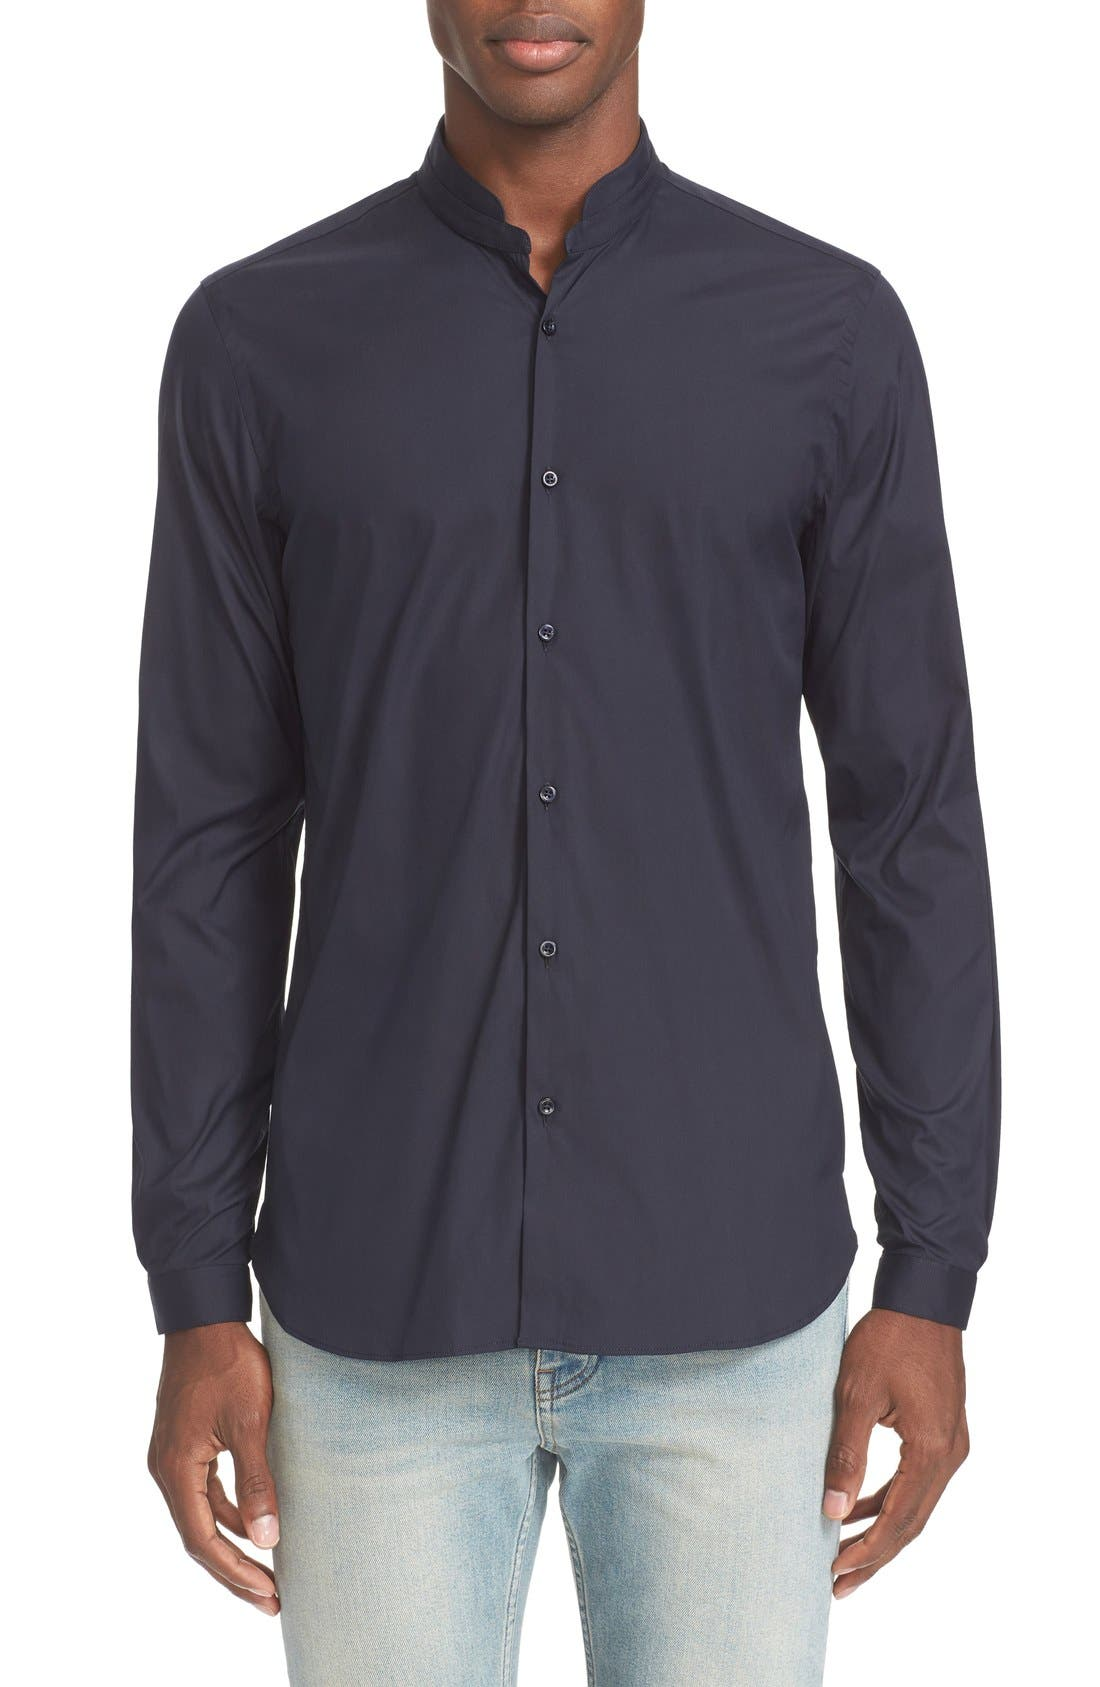 The Kooples Trim Fit Band Collar Sport Shirt